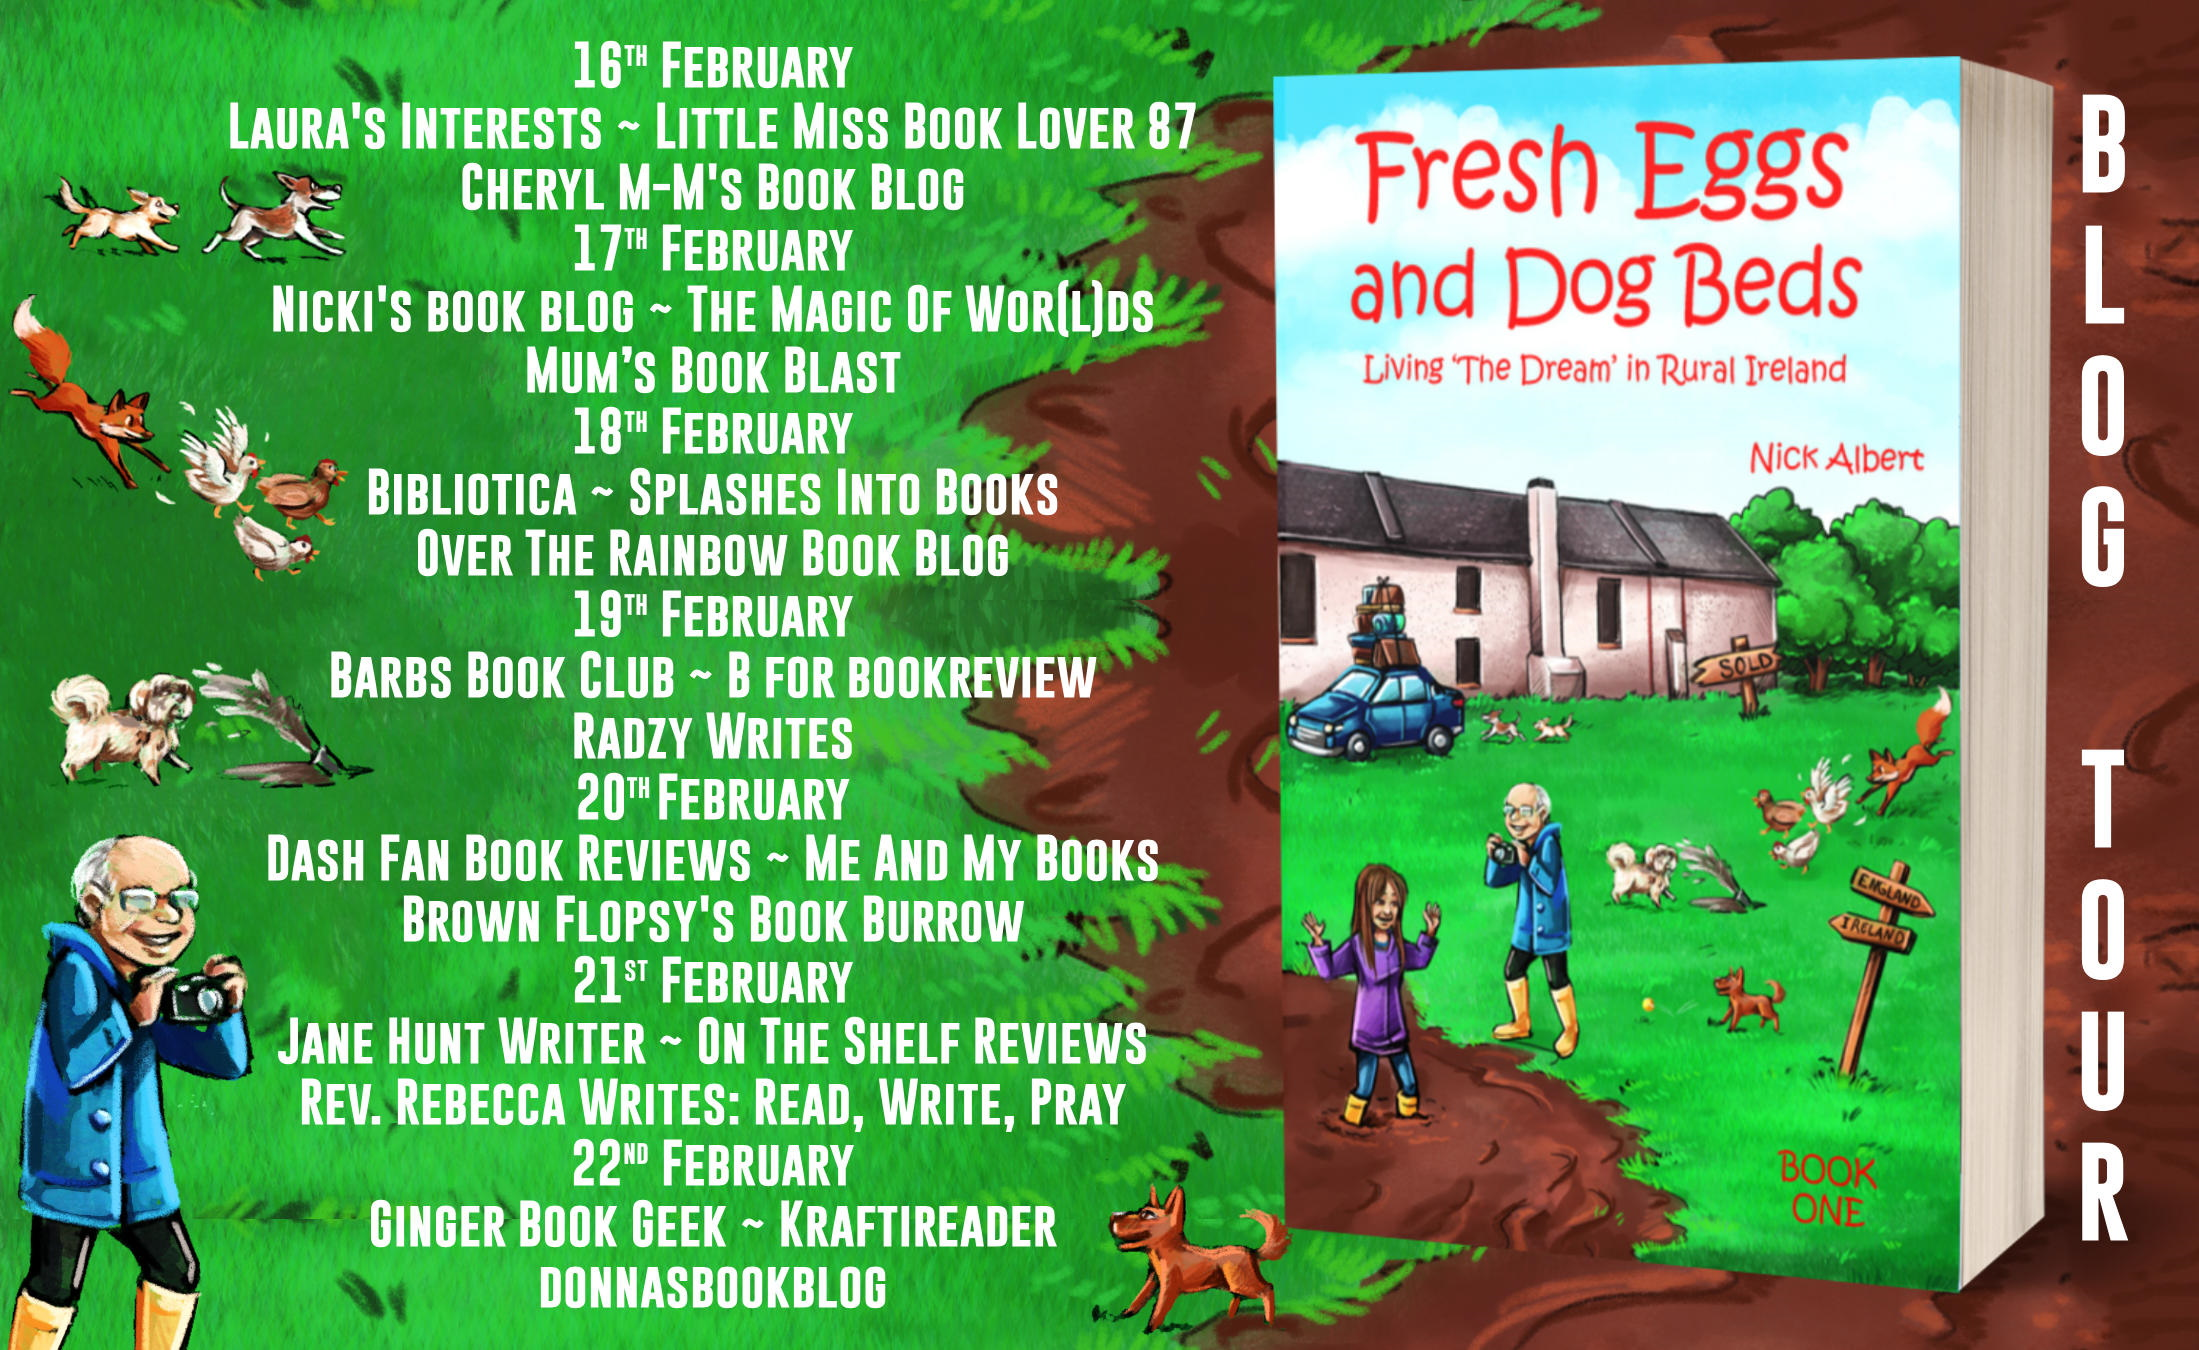 Review: Fresh Eggs and Dog Beds, by Nick Albert